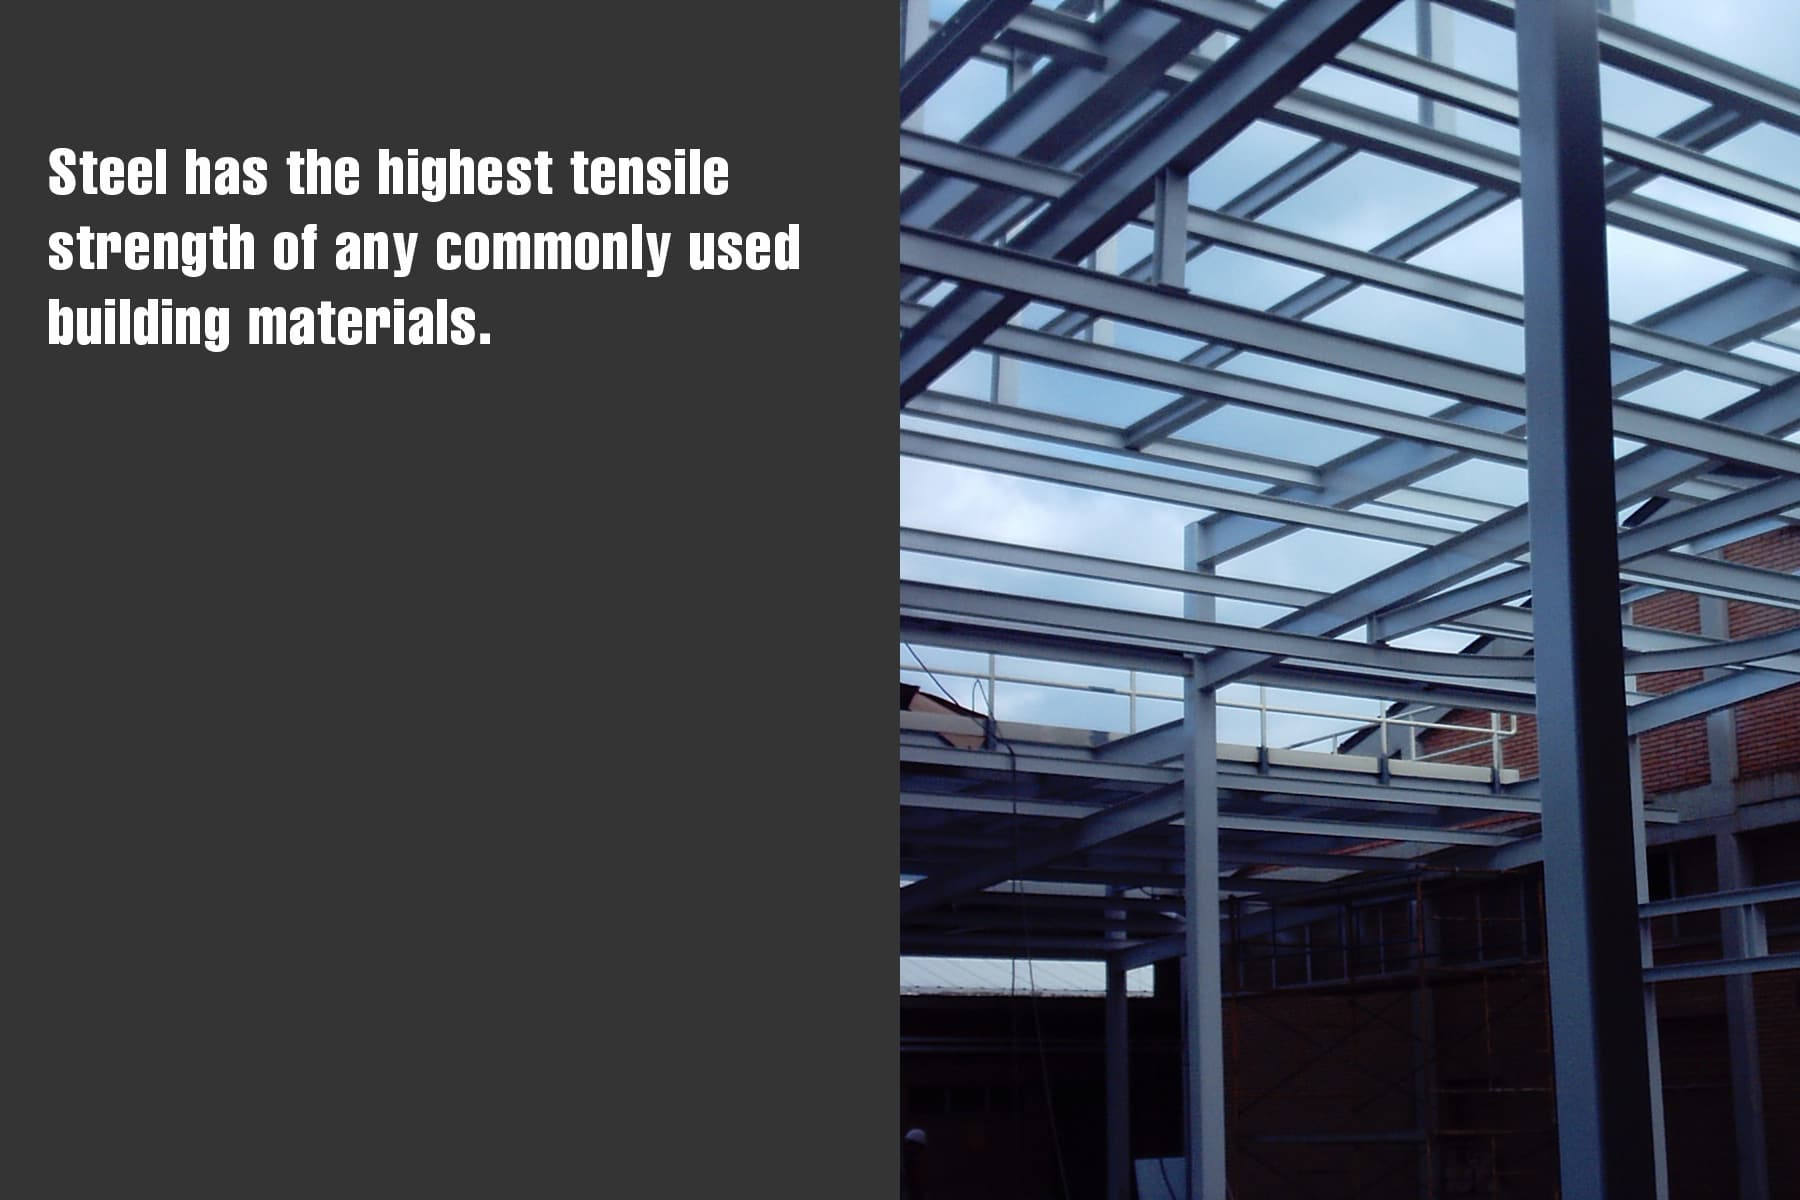 steel has the highest tensile strength of any commonly used building materials